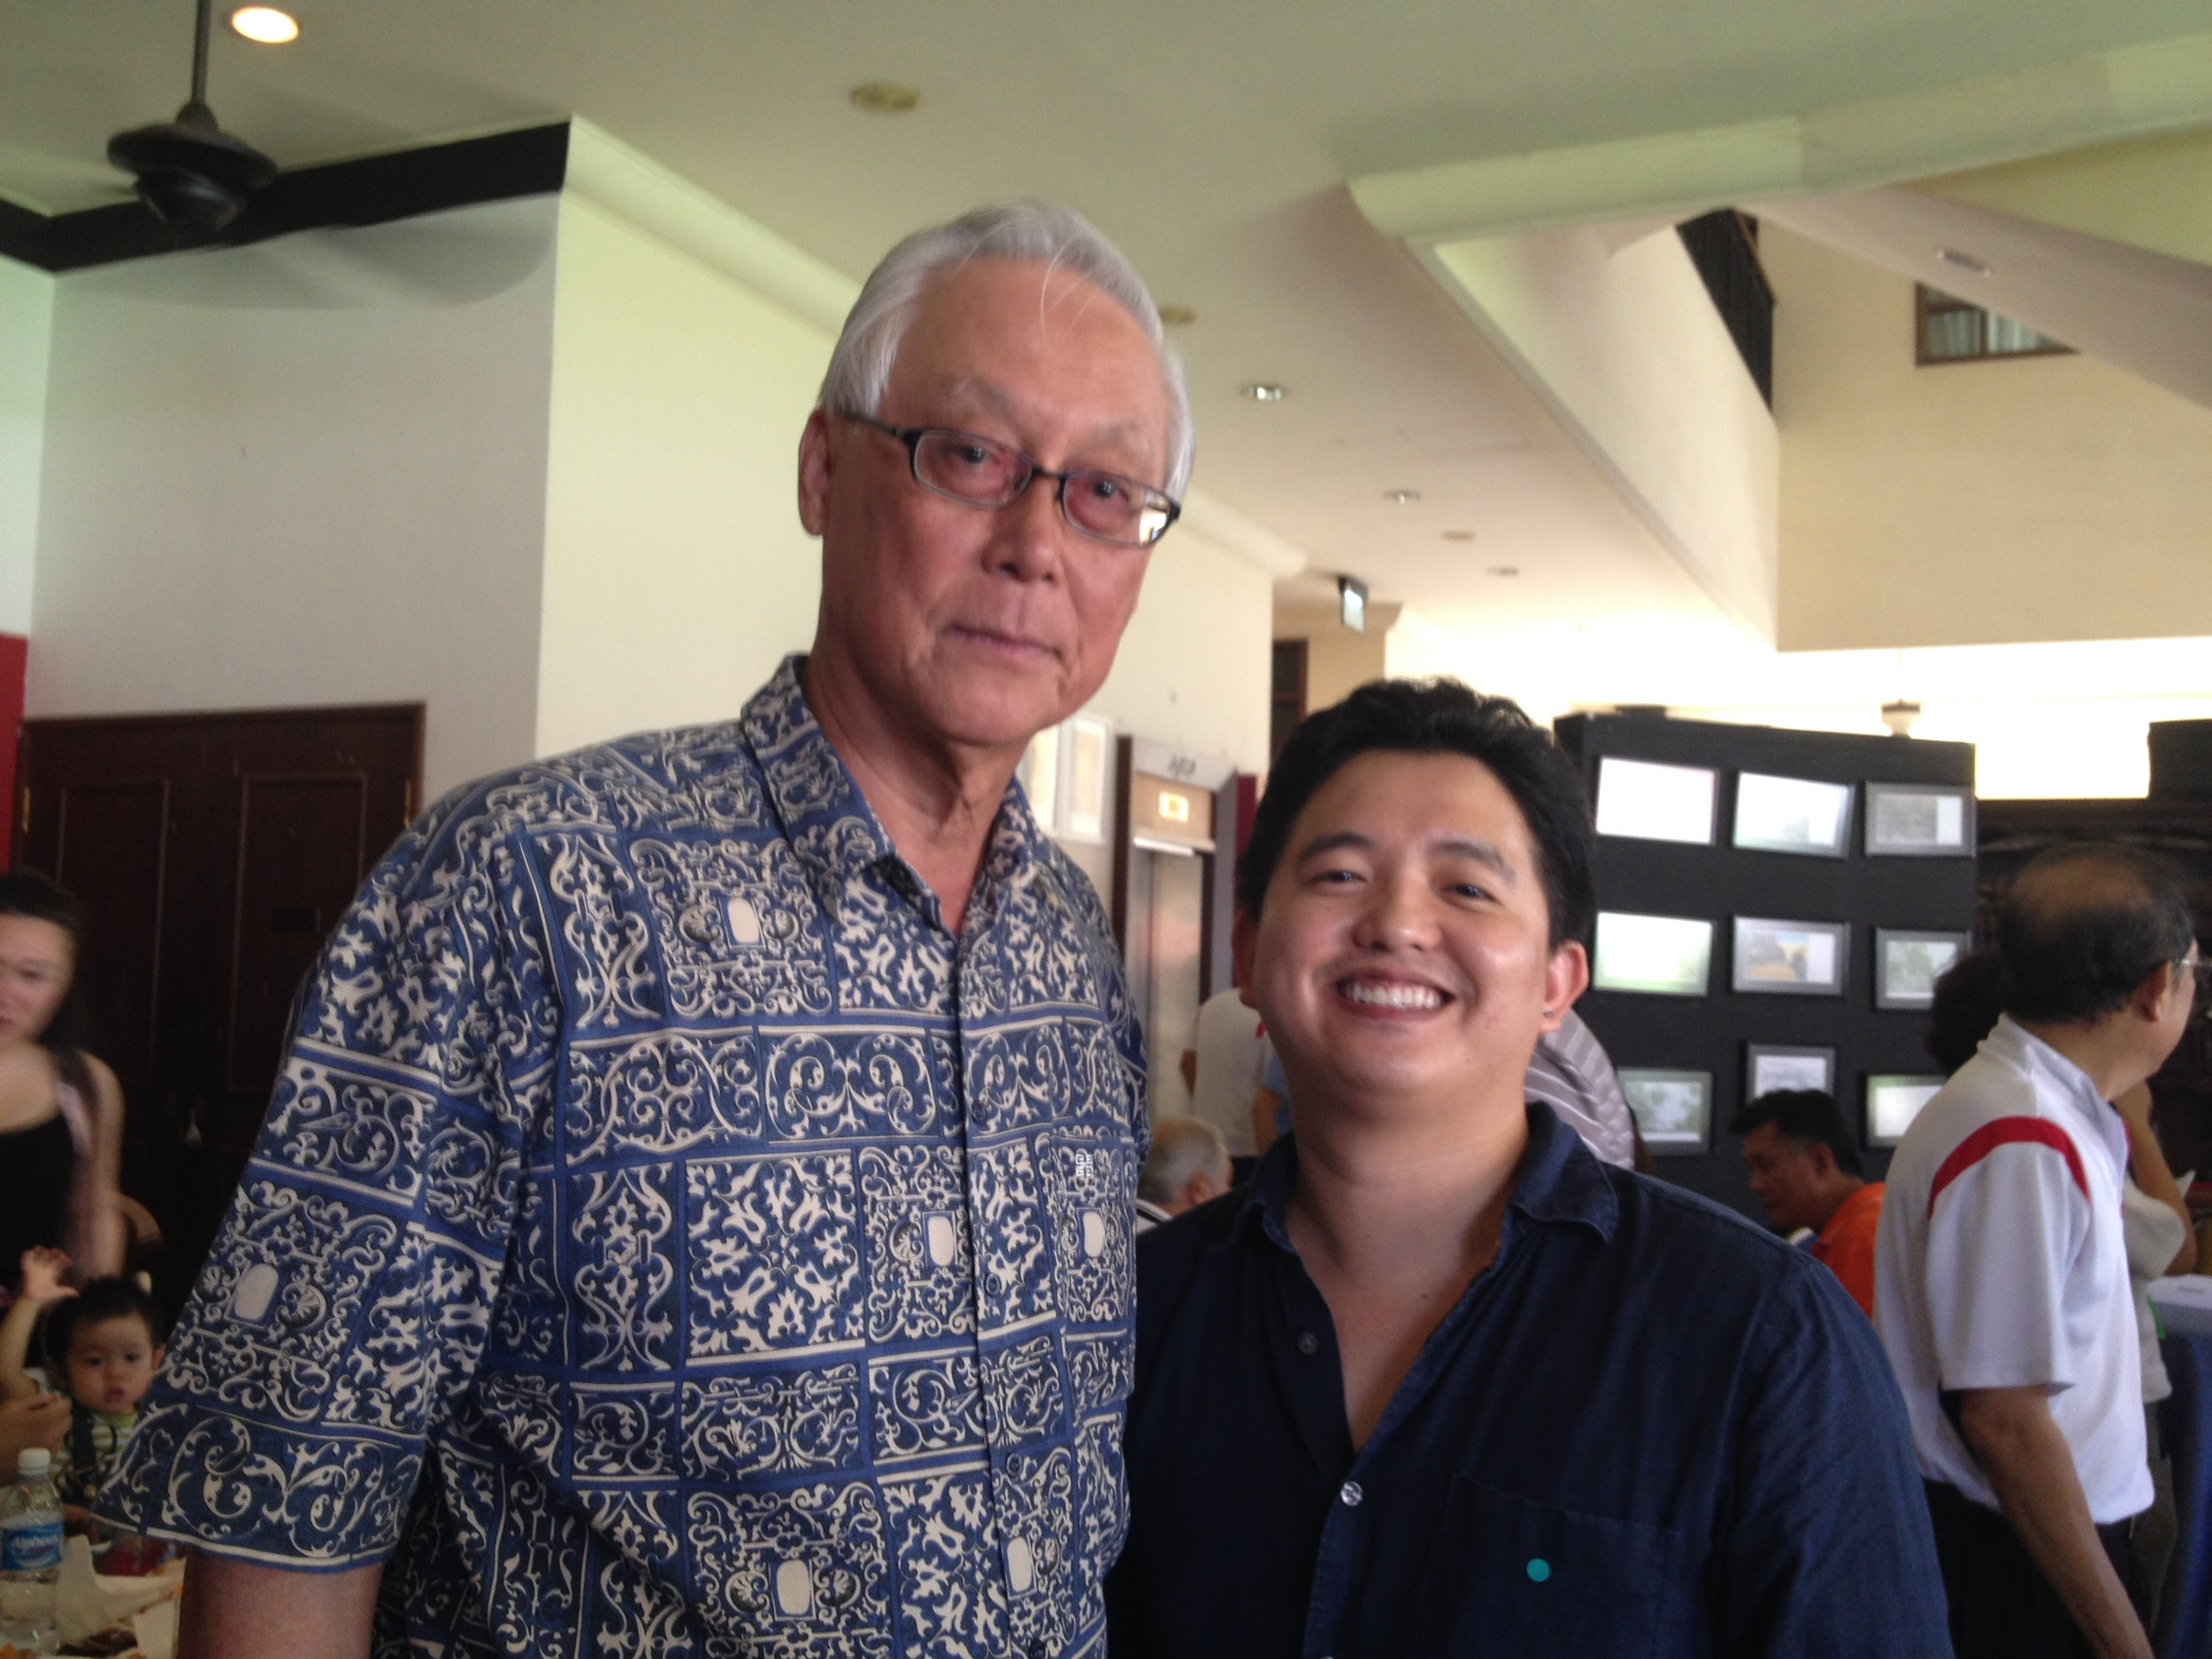 At a luncheon with Emeritus Senior Minister Goh Chok Tong in May 2014